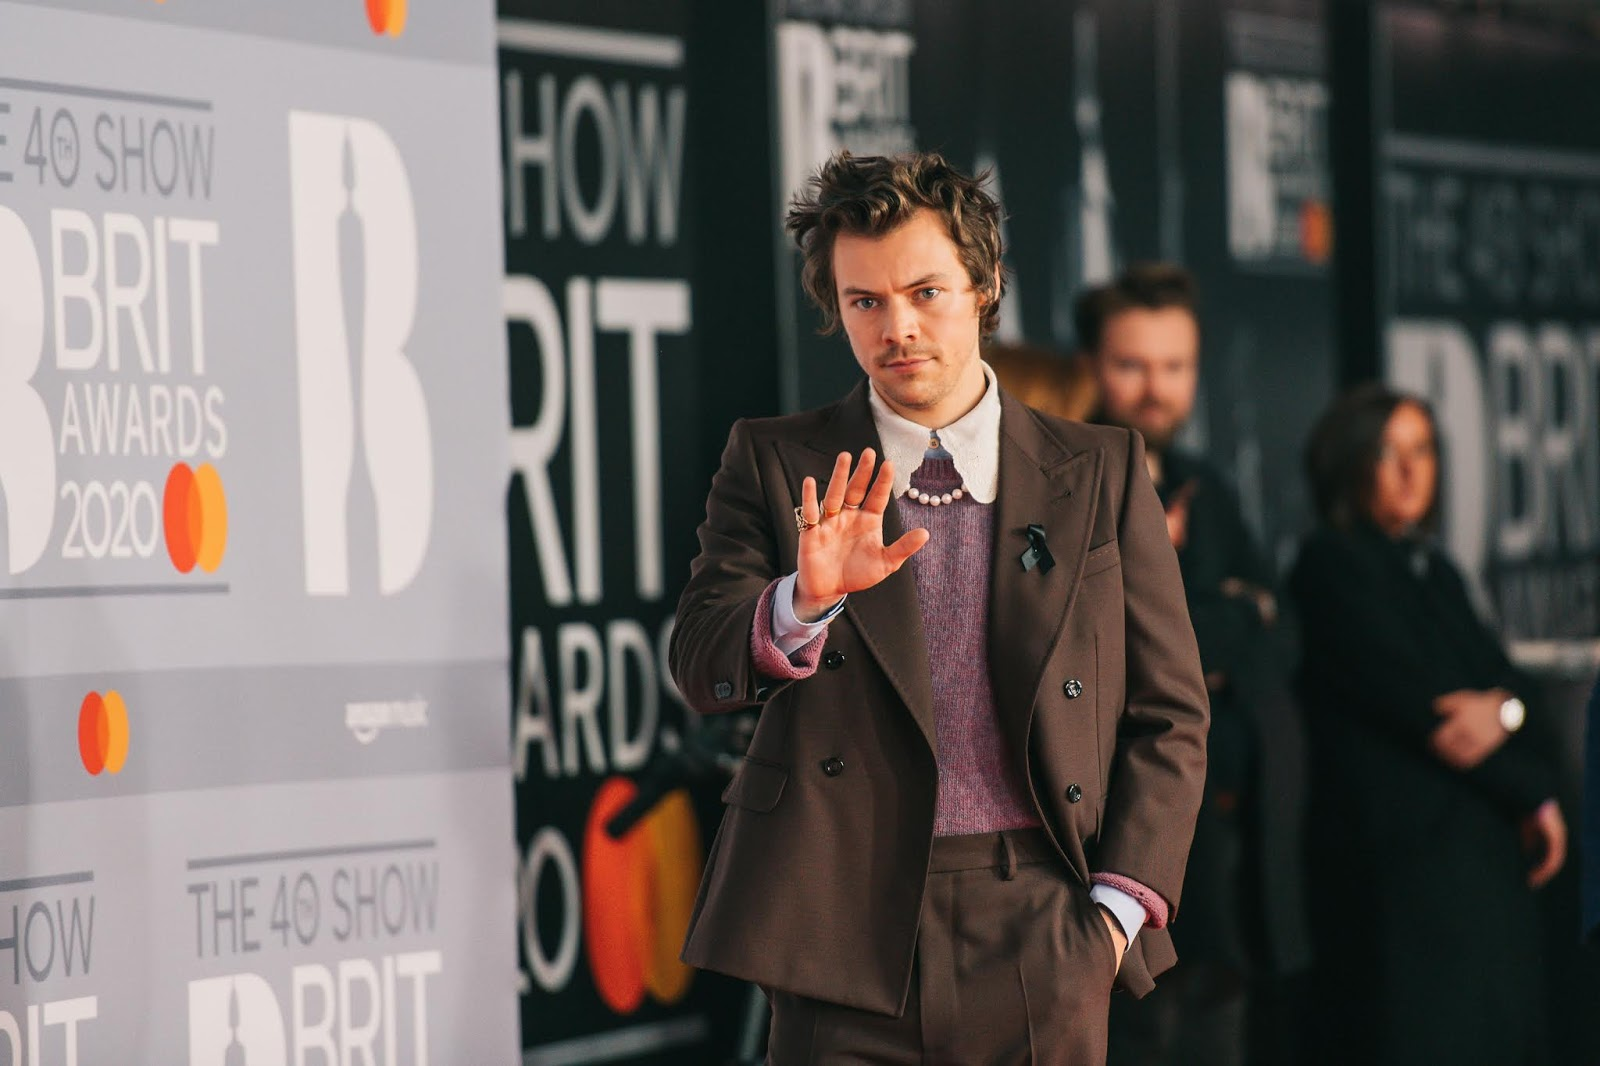 Harry Styles paid tribute to former girlfriend Caroline Flack on Tuesday evening as he arrived at London's O2 Arema for the BRIT Awards